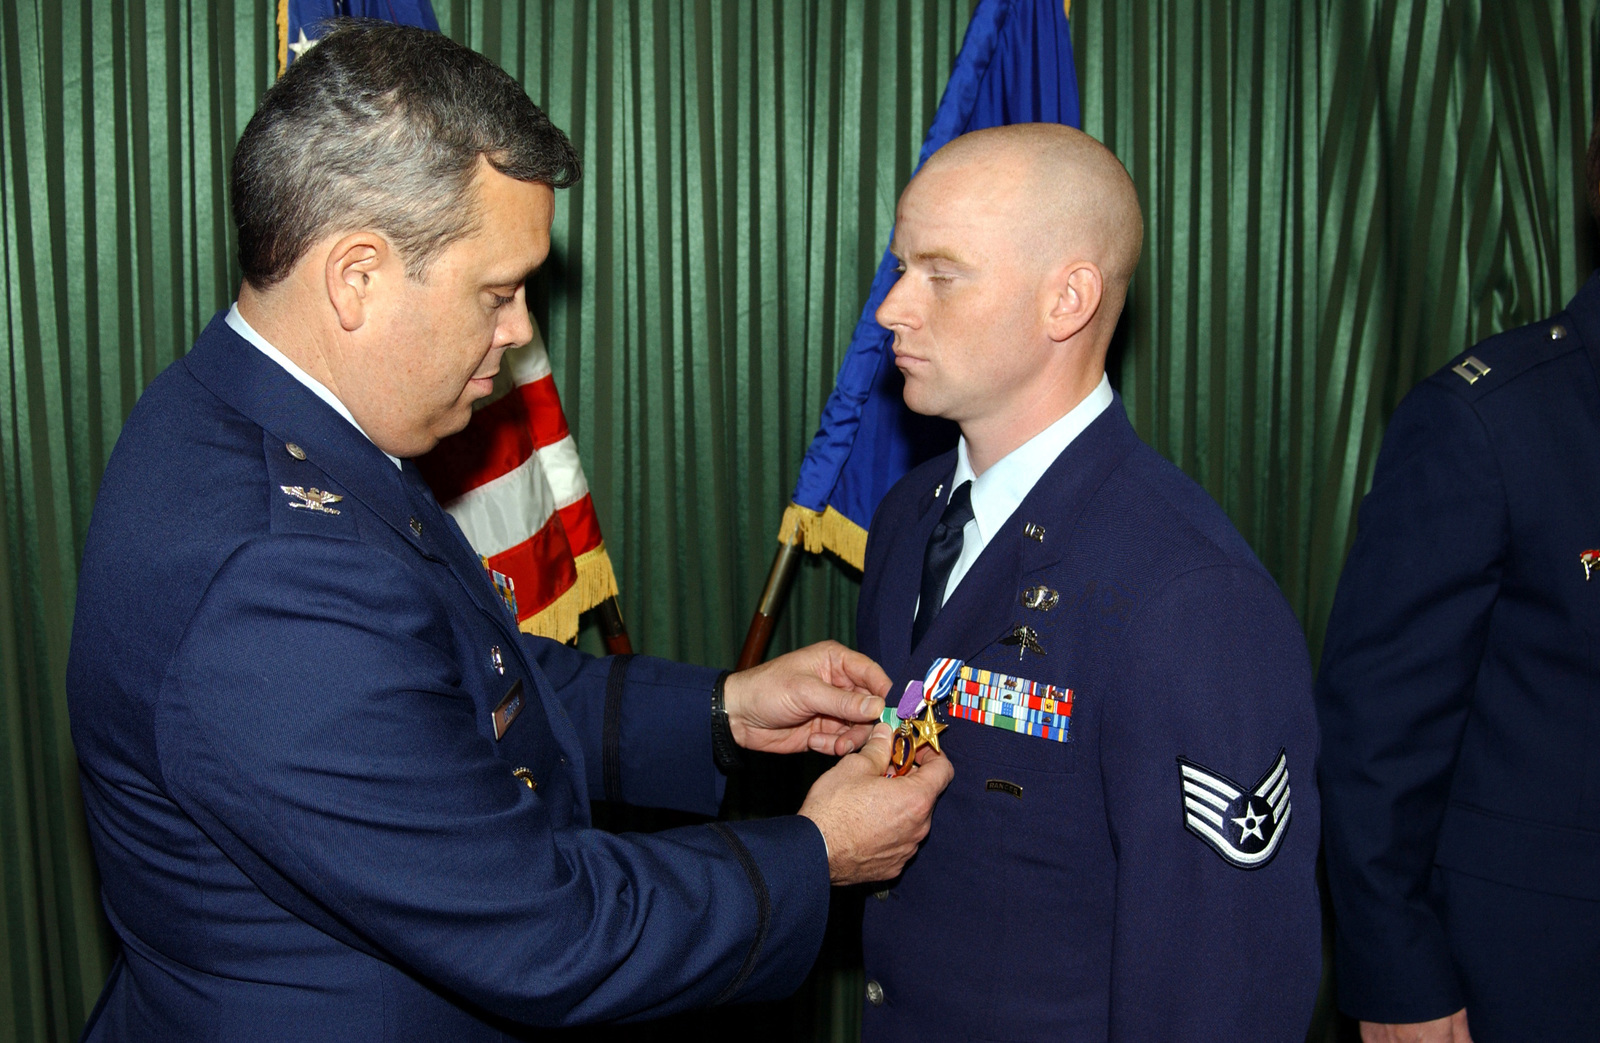 US Air Force (USAF) Colonel (COL) Michael A Longoria (left), Commander, 18th Air Support Operations Group (ASOG), Pope Air Force Base (AFB), North Carolina (NC), pins the Bronze Star on USAF STAFF Sergeant (SSGT) Kevin D Vance, 17th Air Support Operations Squadron (ASOS), Hunter Army Airfield (AAF), Georgia (GA). They awards ceremony was held at the Hunter Club on the base